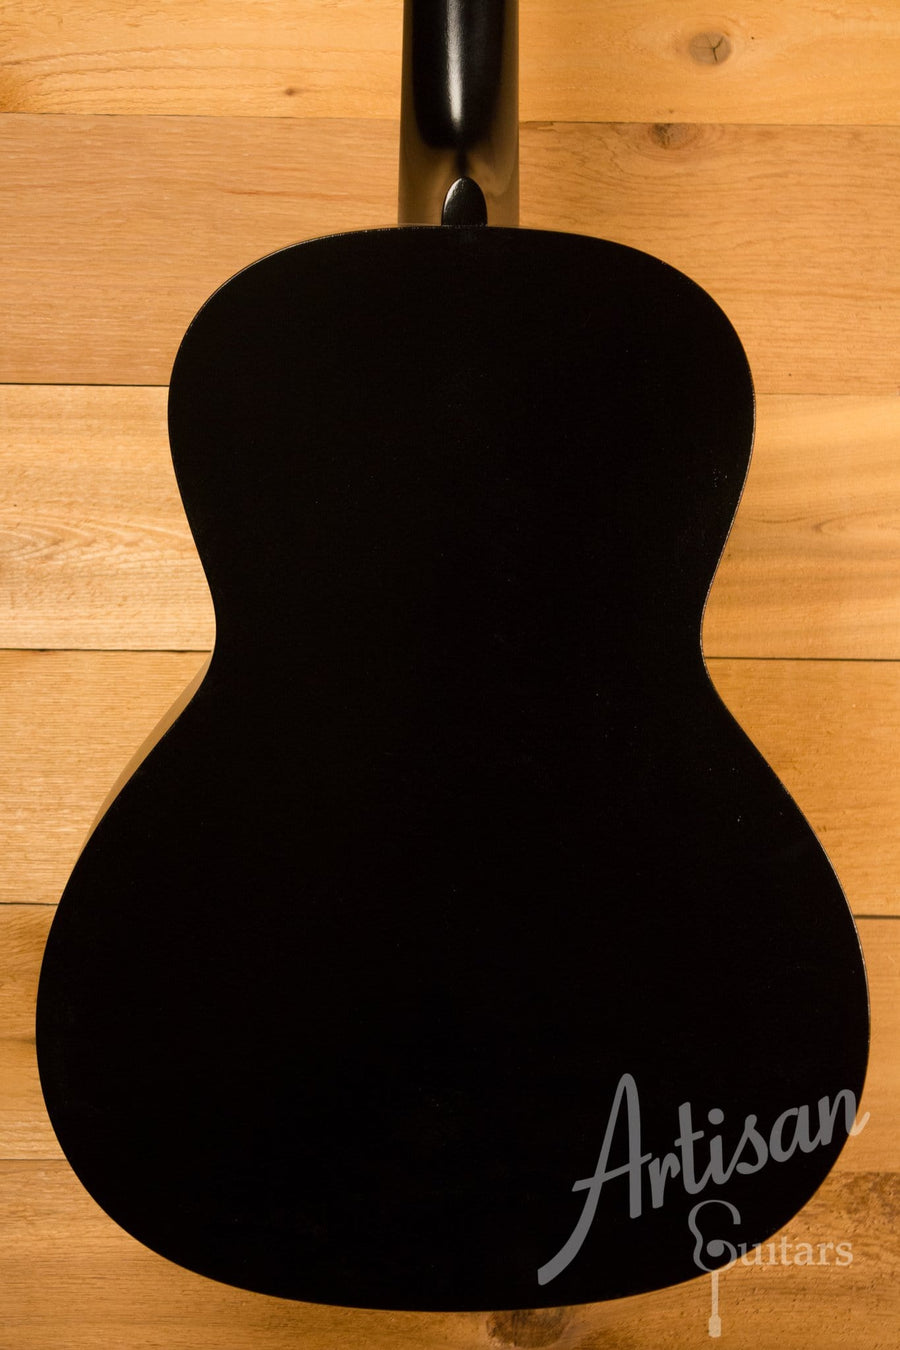 Waterloo WL-14L Guitar with Truss Rod Jet Black Finish and Small Neck Profile ID-10428 - Artisan Guitars